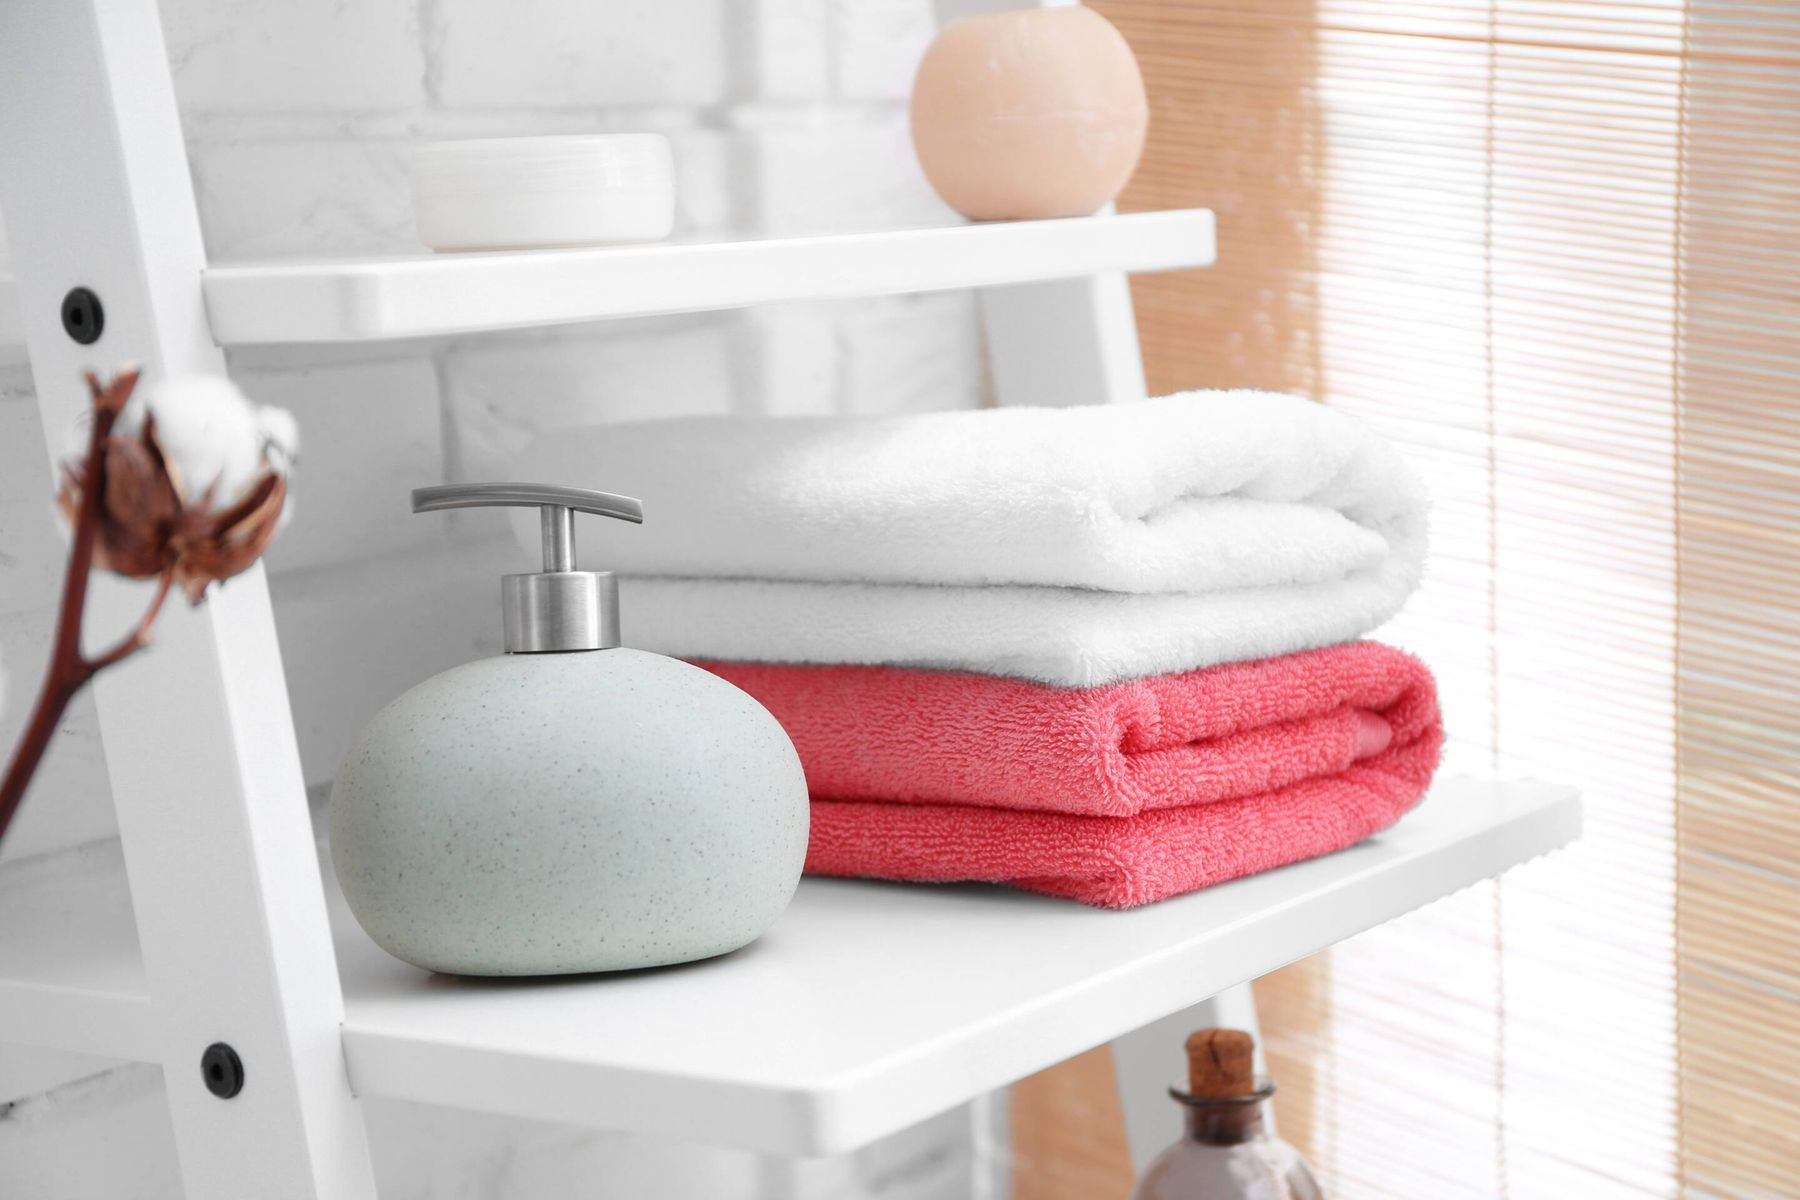 Are your towels losing their softness after washing in hard water? Follow these few hacks to get soft towels after every wash